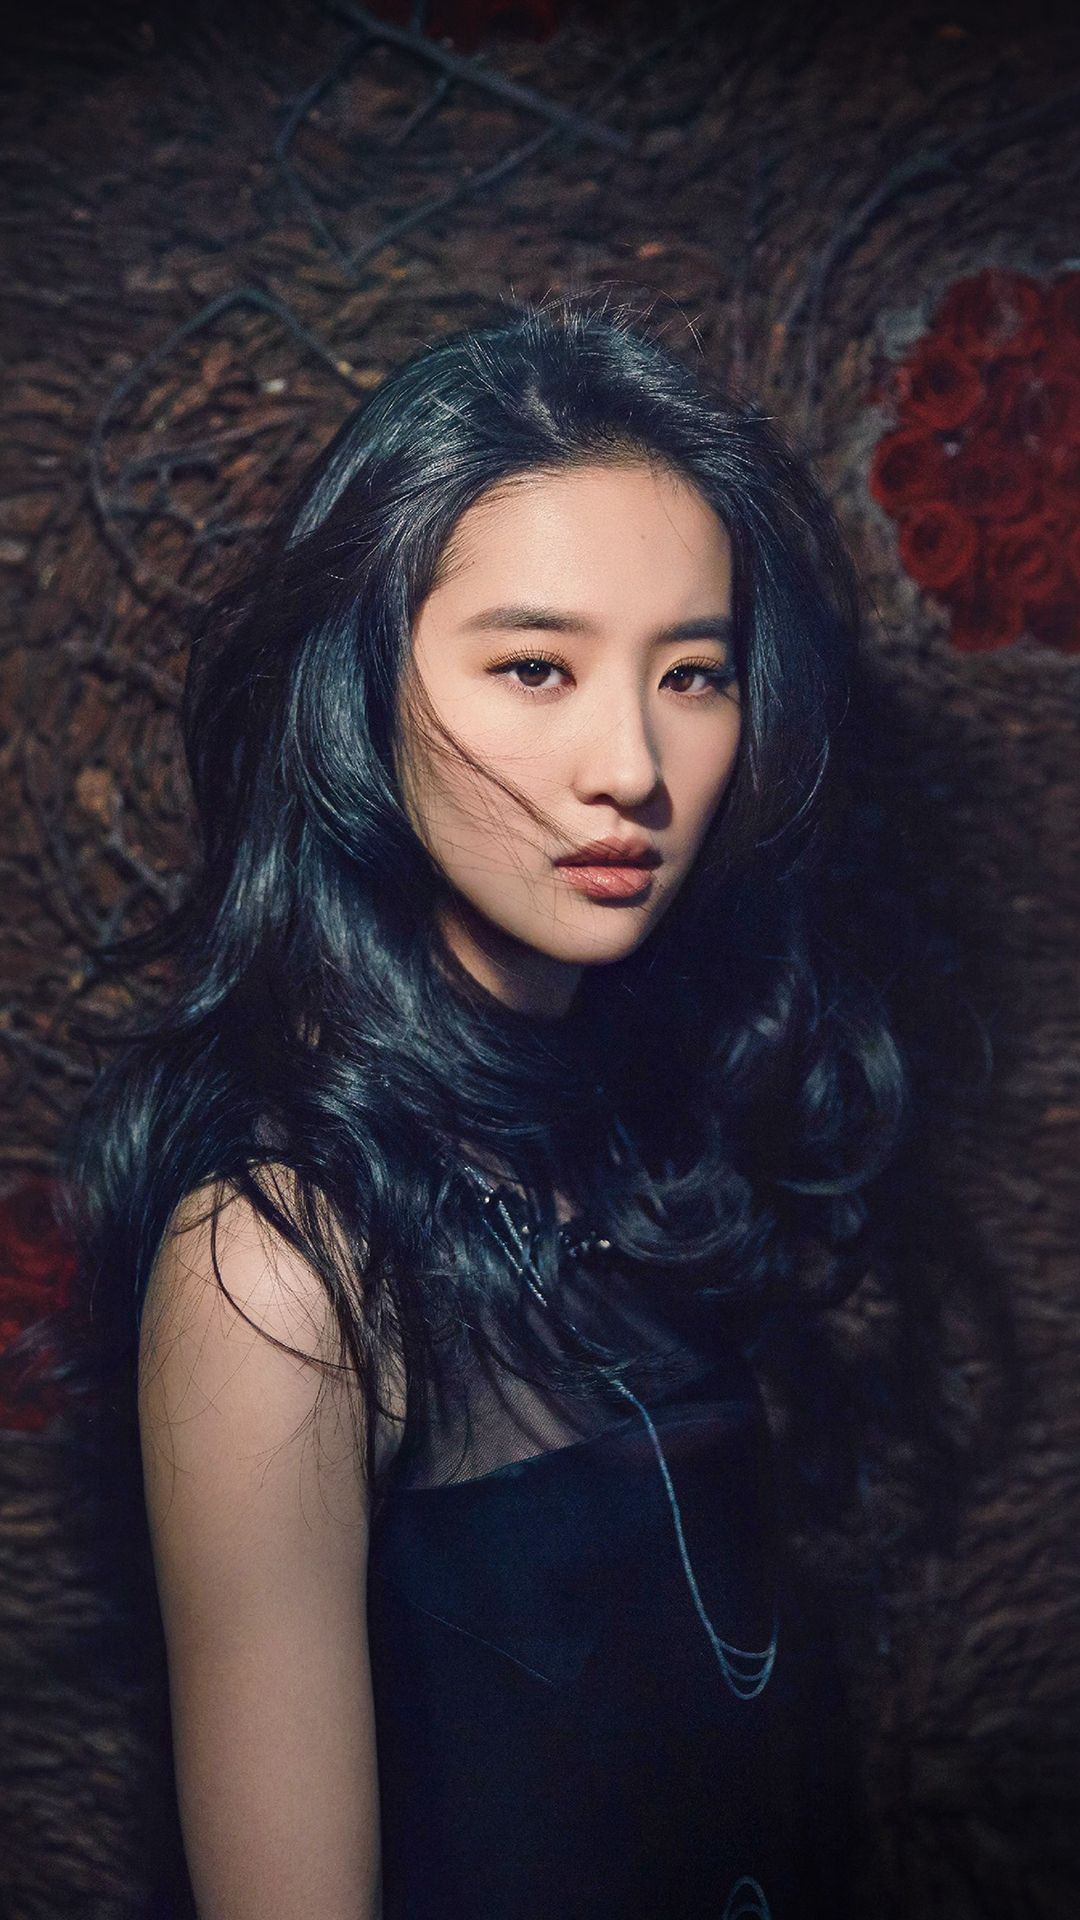 girl liu yifei china film actress model singer dark #iphone #6 #plus